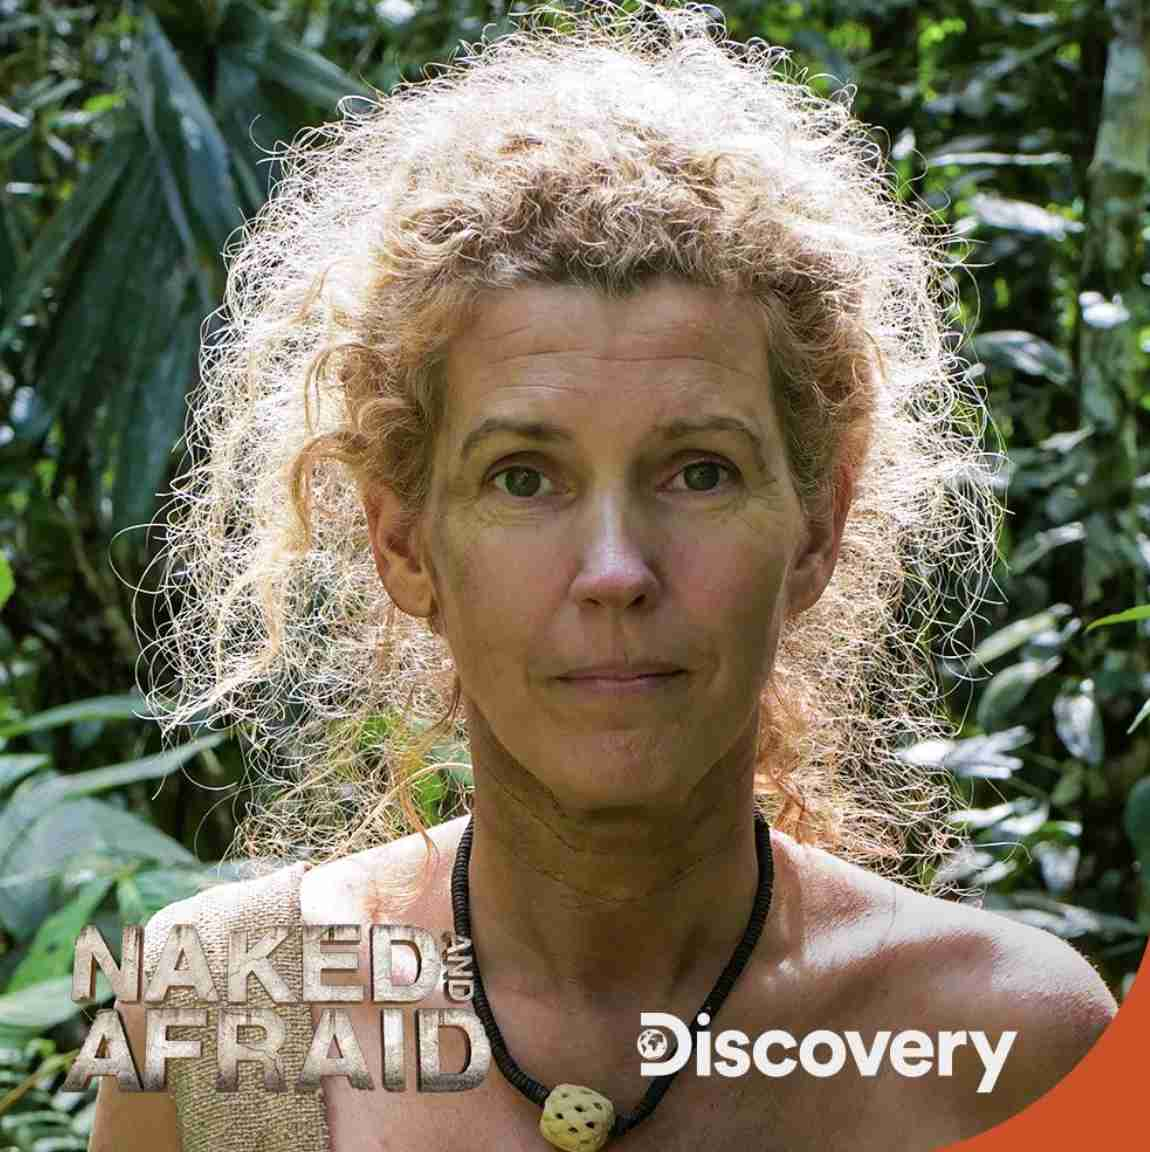 Trish Bulinsky Discovery Channel Naked and Afraid NJ Middletown